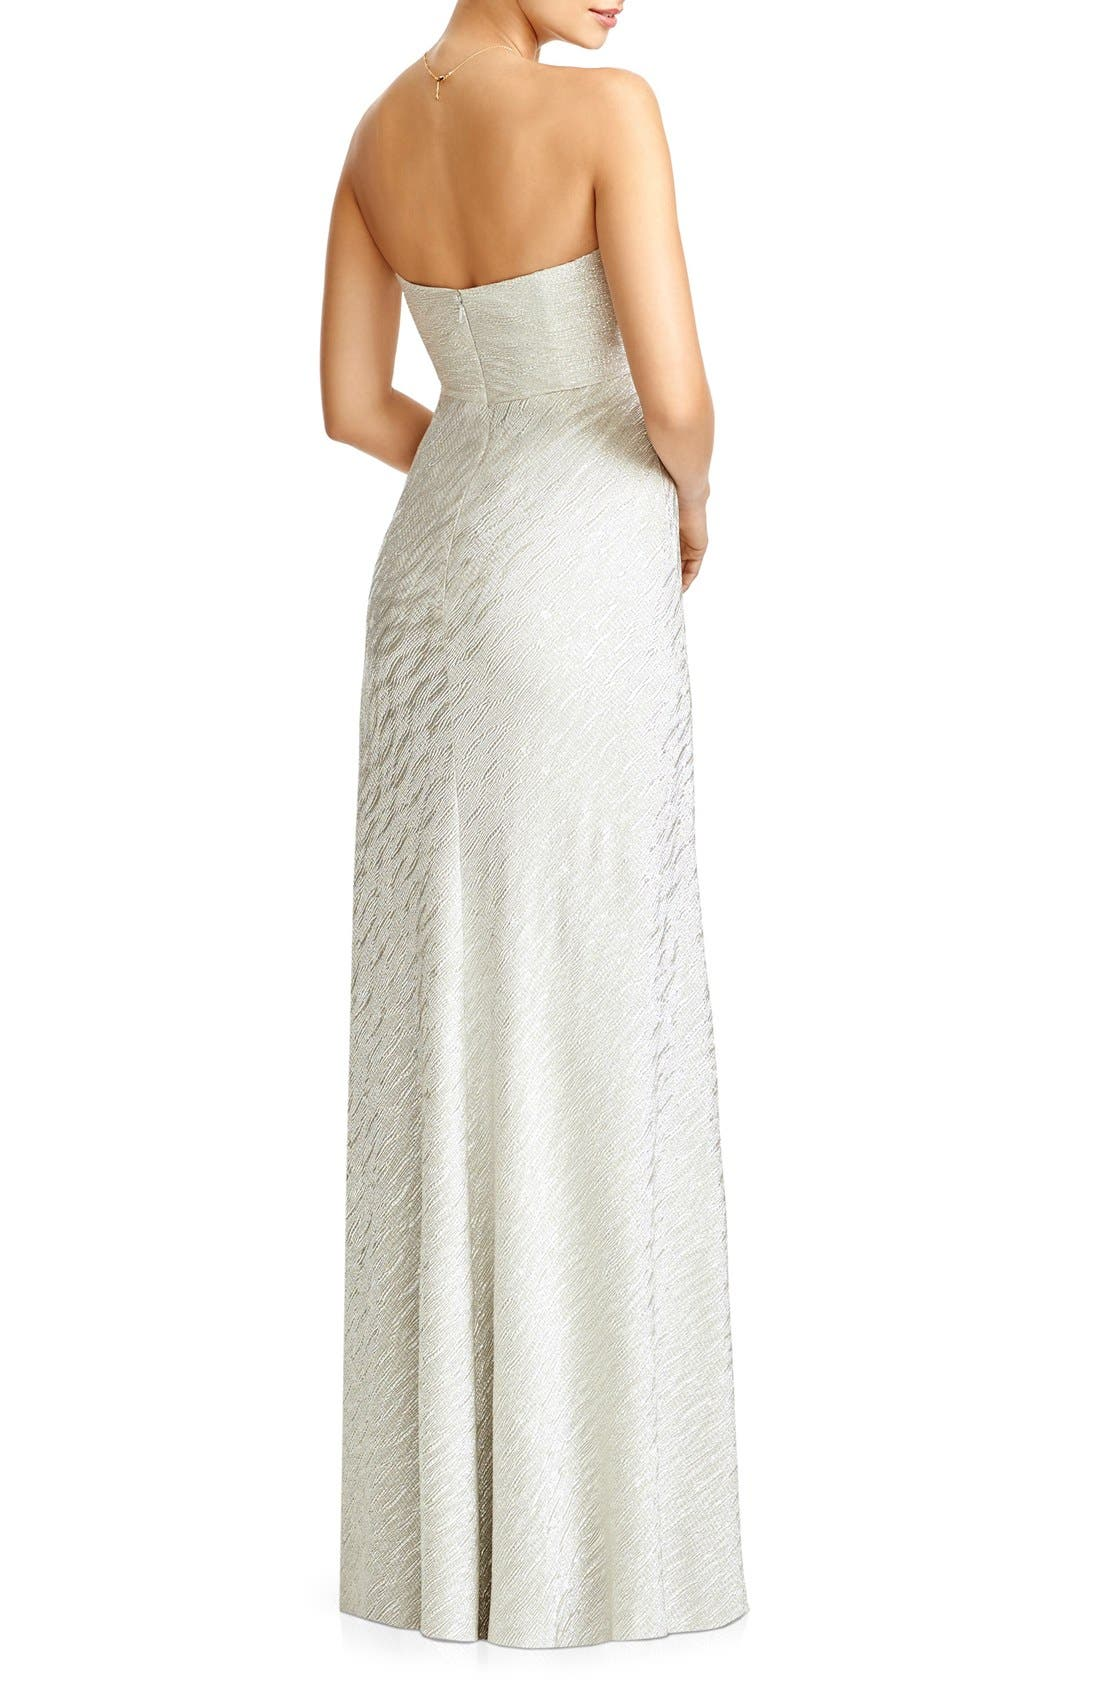 JY JENNY YOO, 'Soho' Metallic Strapless Empire Waist Gown, Alternate thumbnail 2, color, CHAMPAGNE SILVER